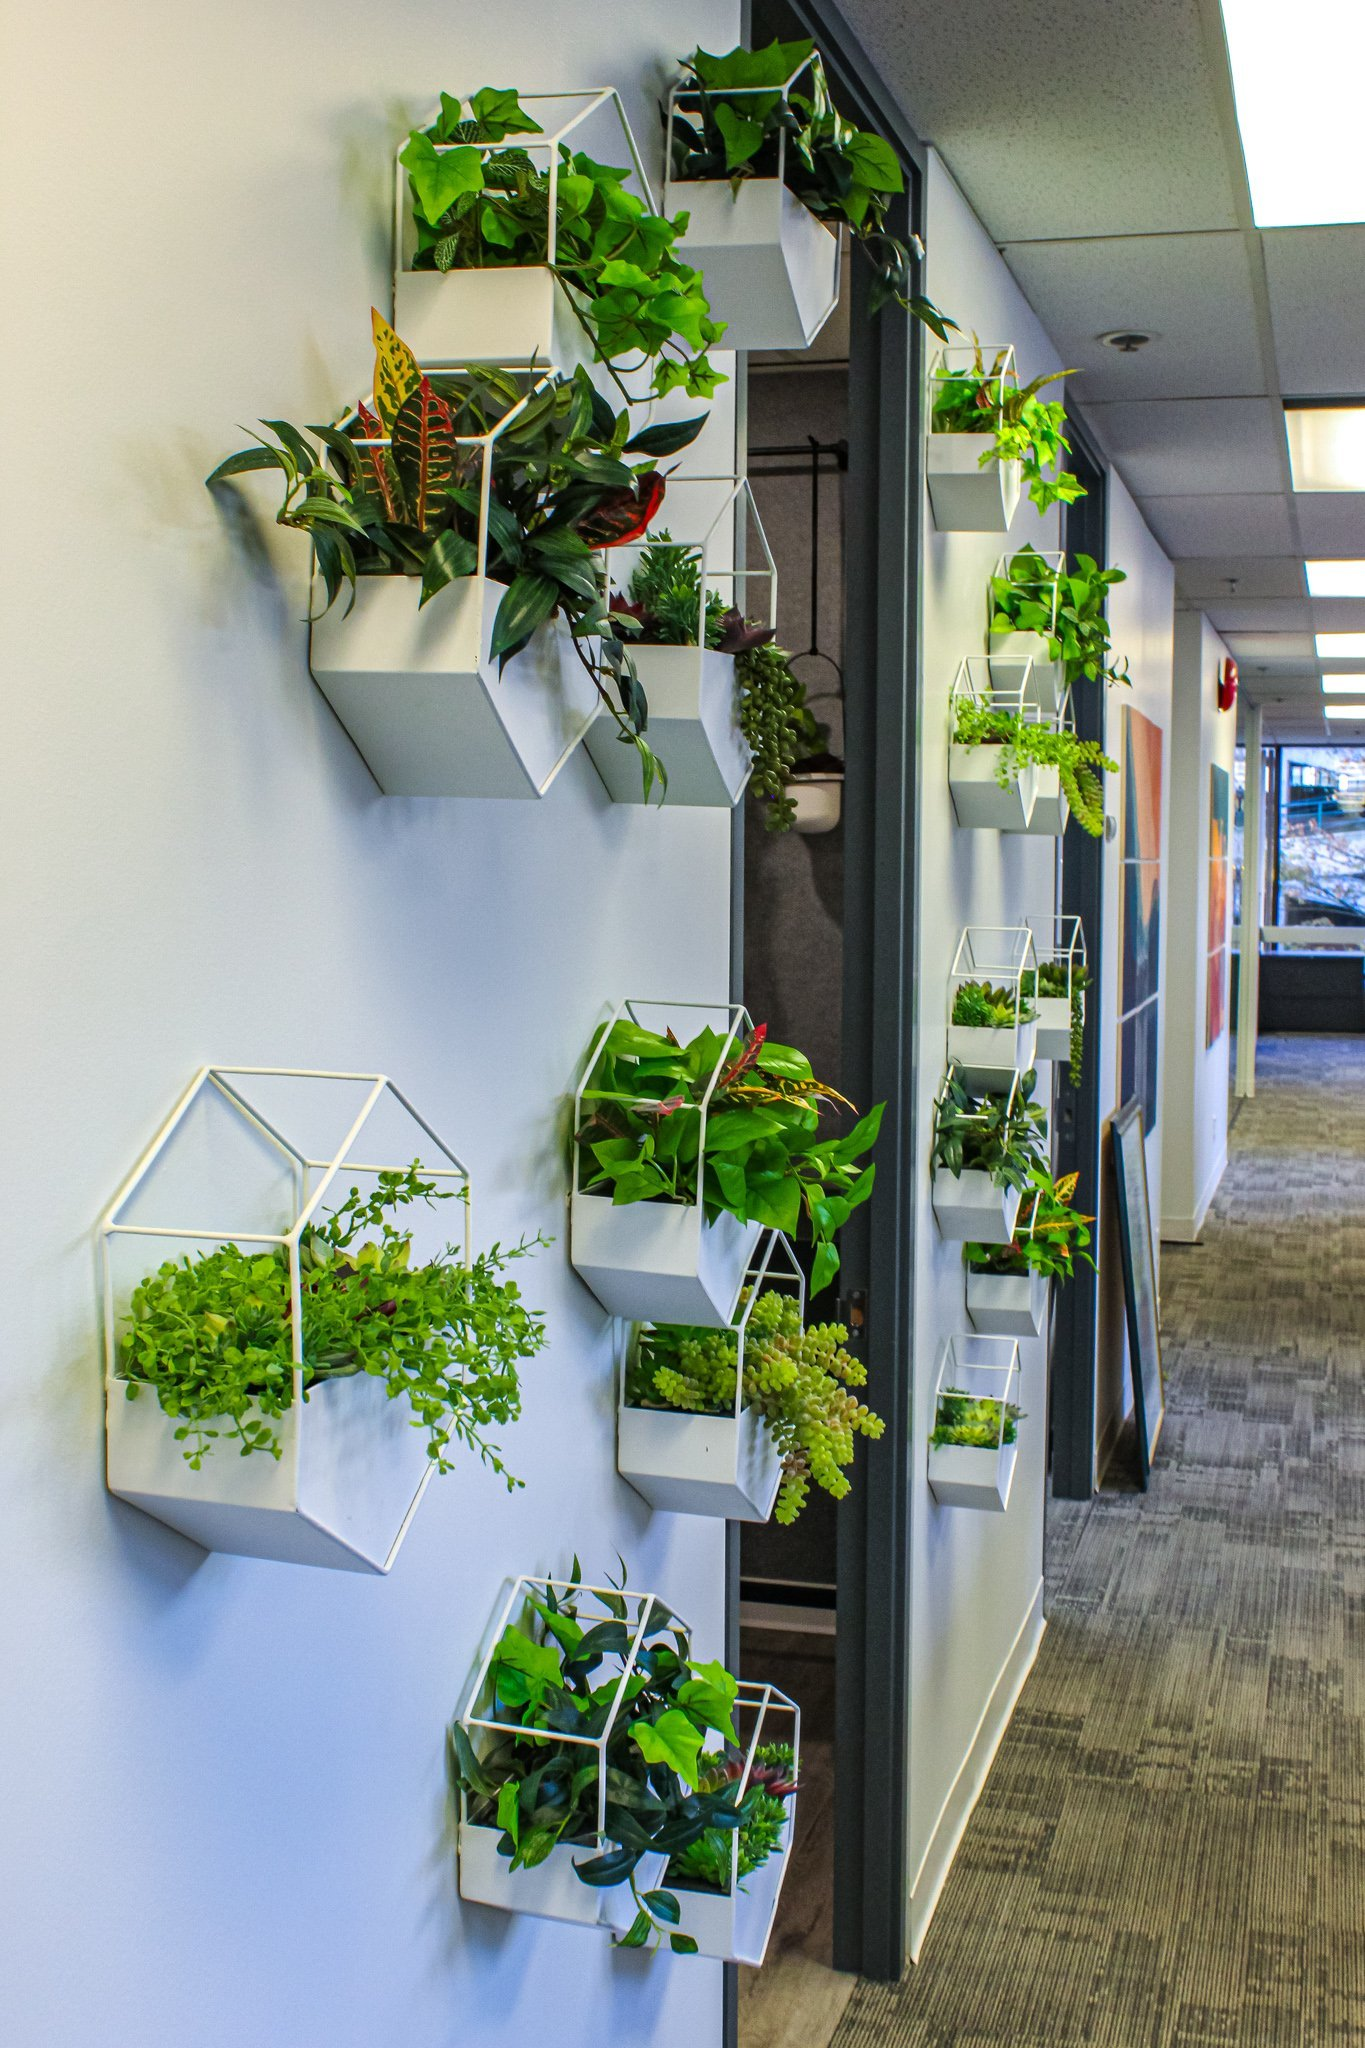 White hexagon planters as wall decor for coffee bar entrance in office building